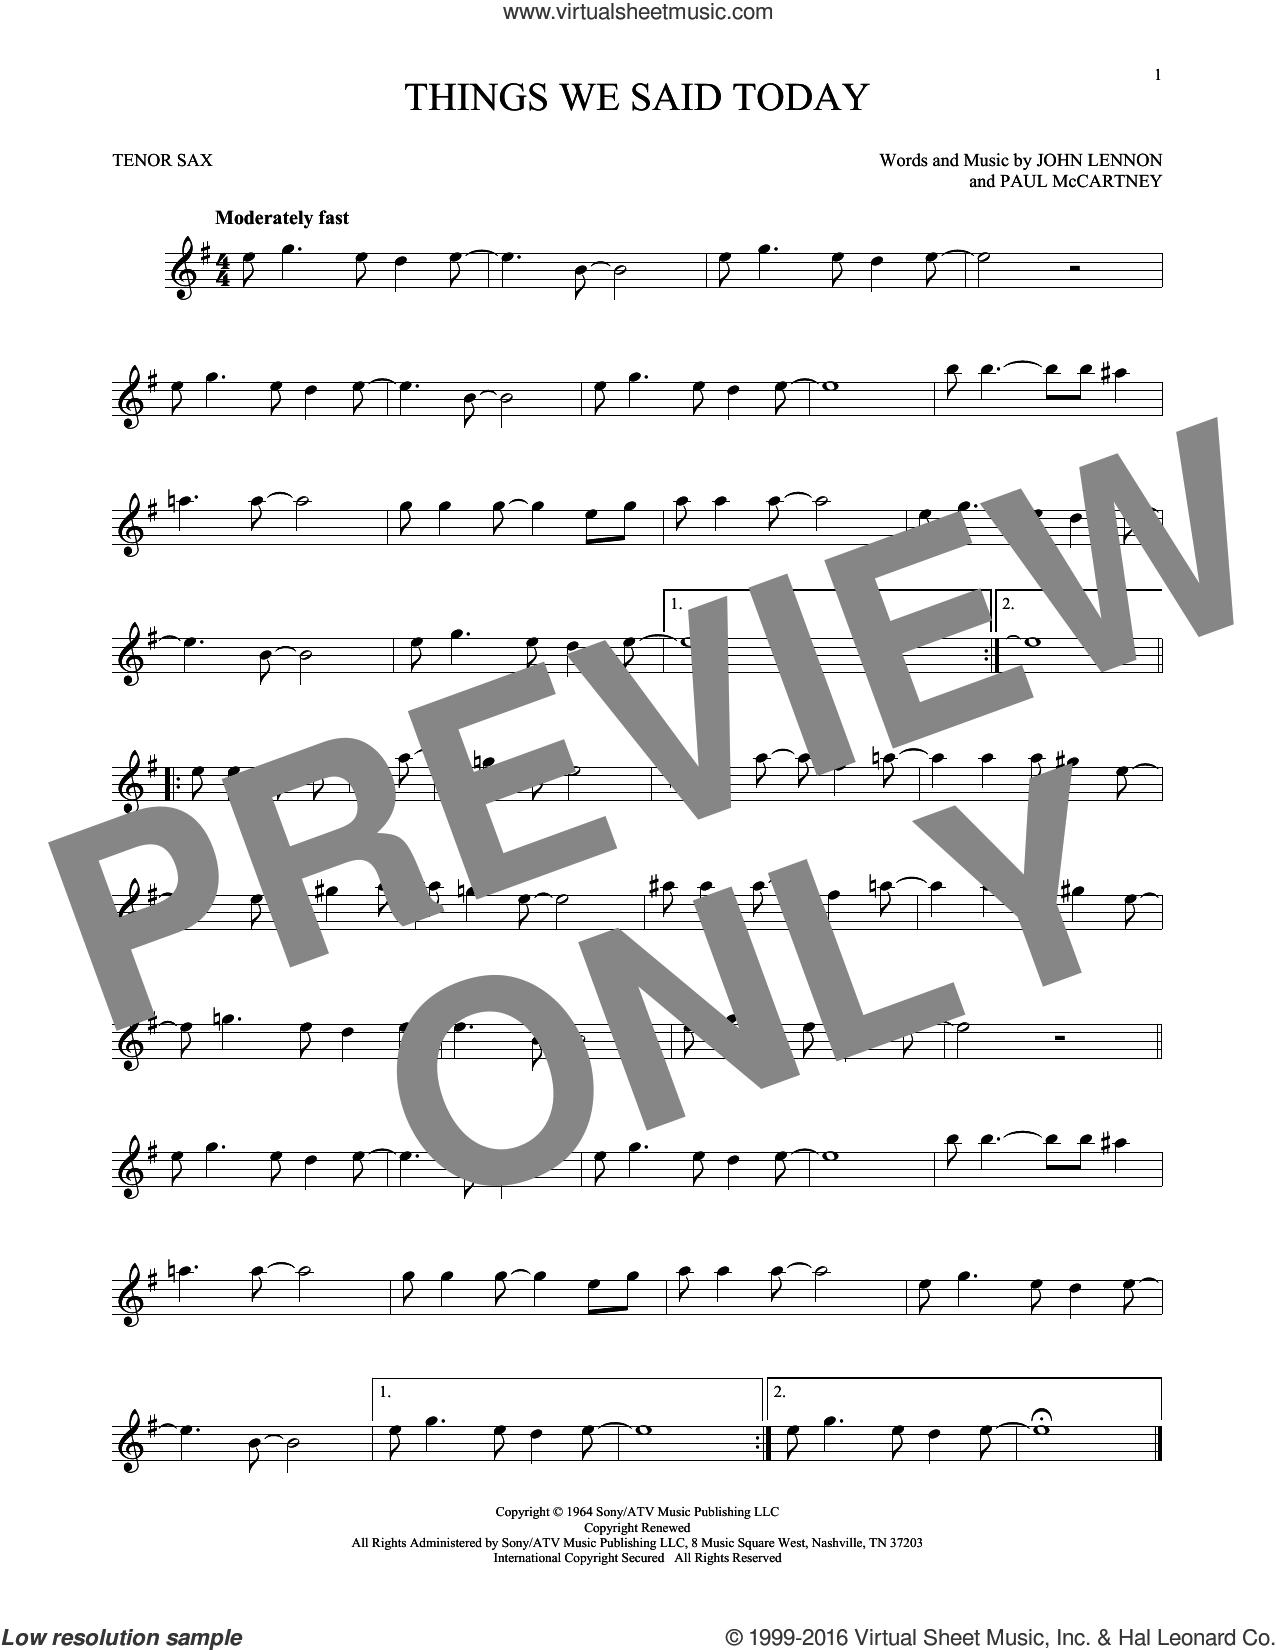 Things We Said Today sheet music for tenor saxophone solo by Paul McCartney